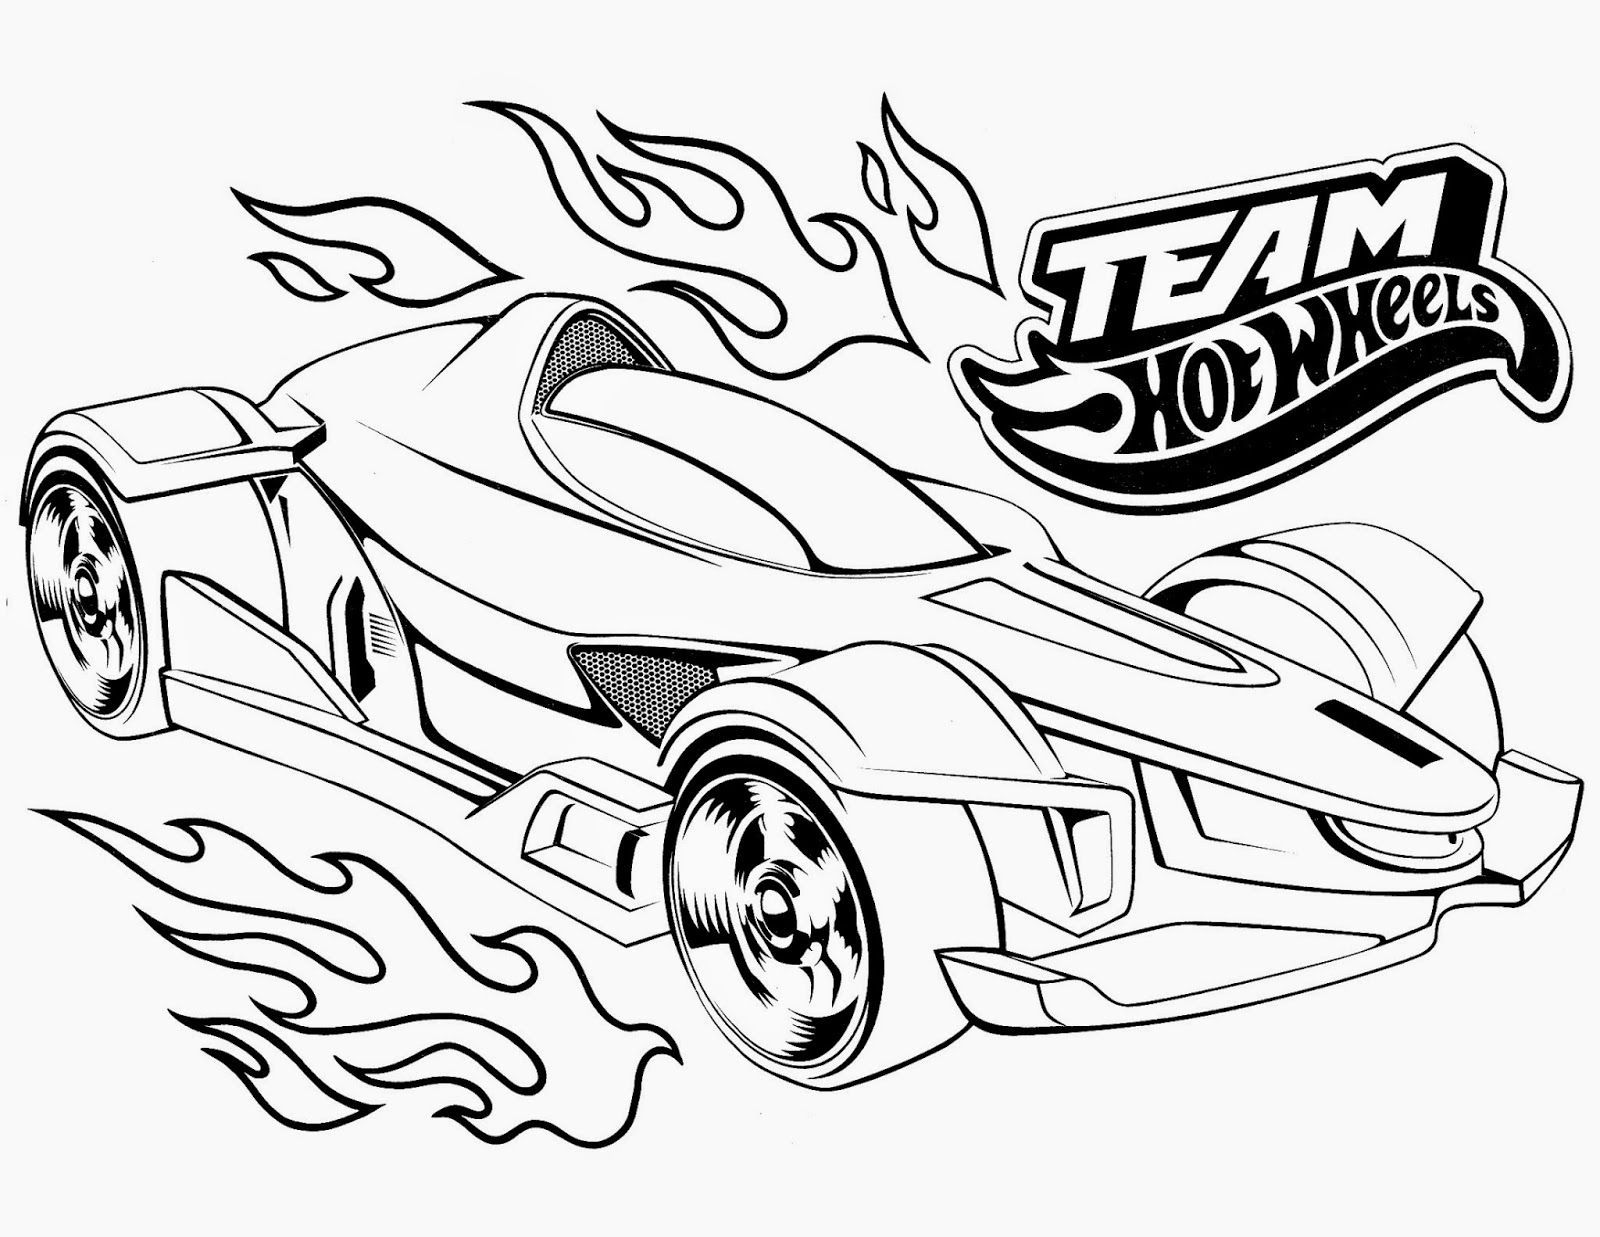 19 Refined White Truck Wheels Ideas Cars Coloring Pages Race Car Coloring Pages Truck Coloring Pages